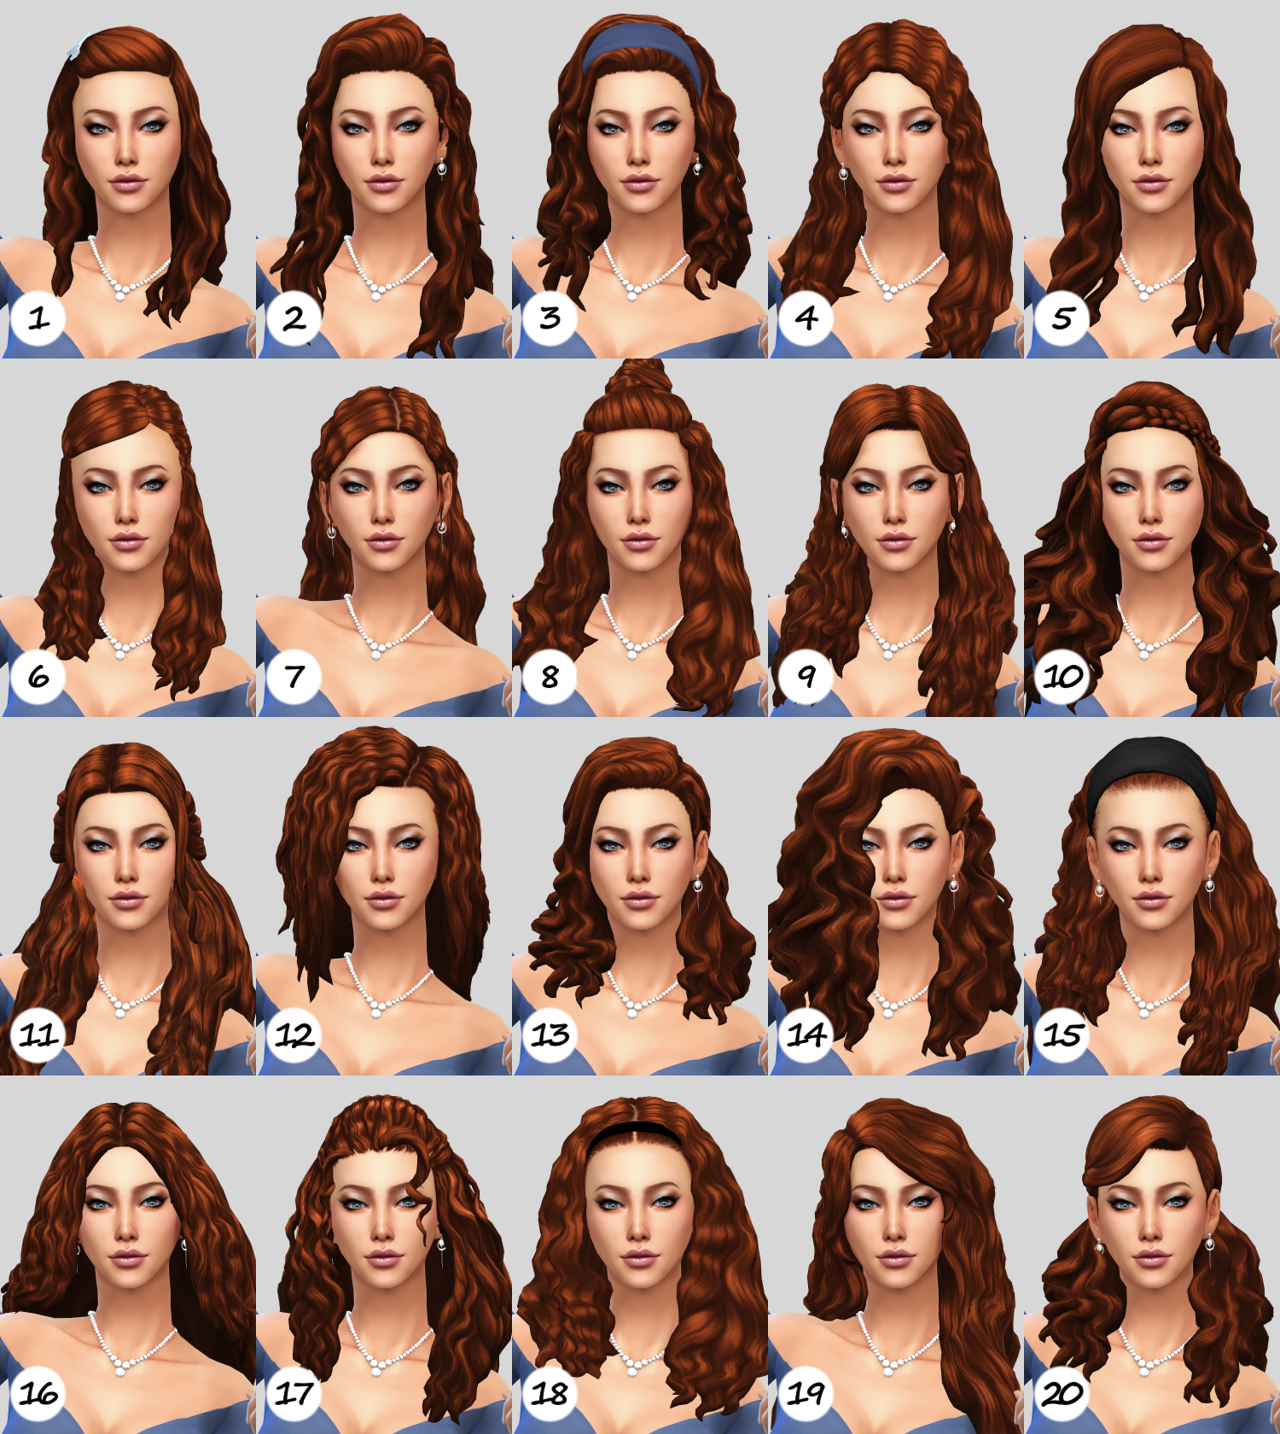 Maxis Match Cc World S4cc Finds Daily Free Downloads For The Sims 4 Sims 4 Sims 4 Curly Hair Sims